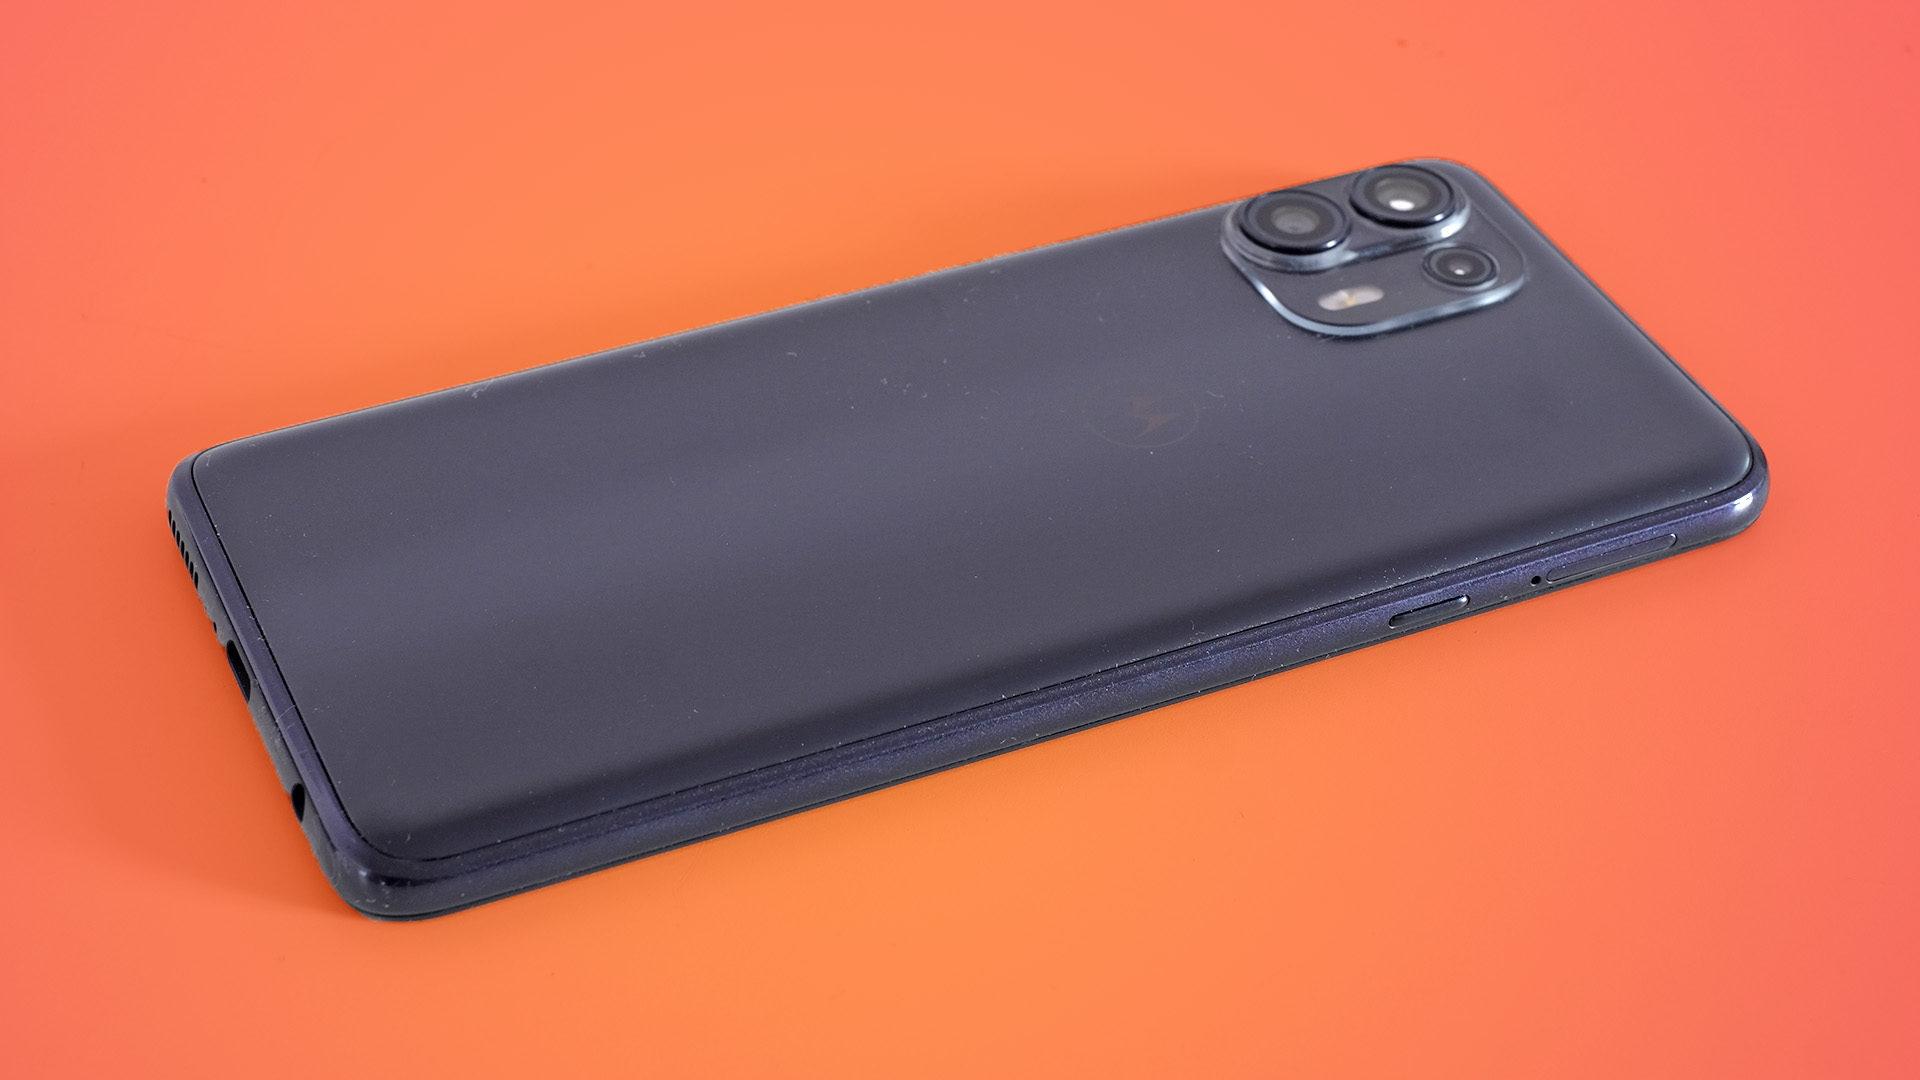 A Motorola Edge 20 Lite from the back against an orange background